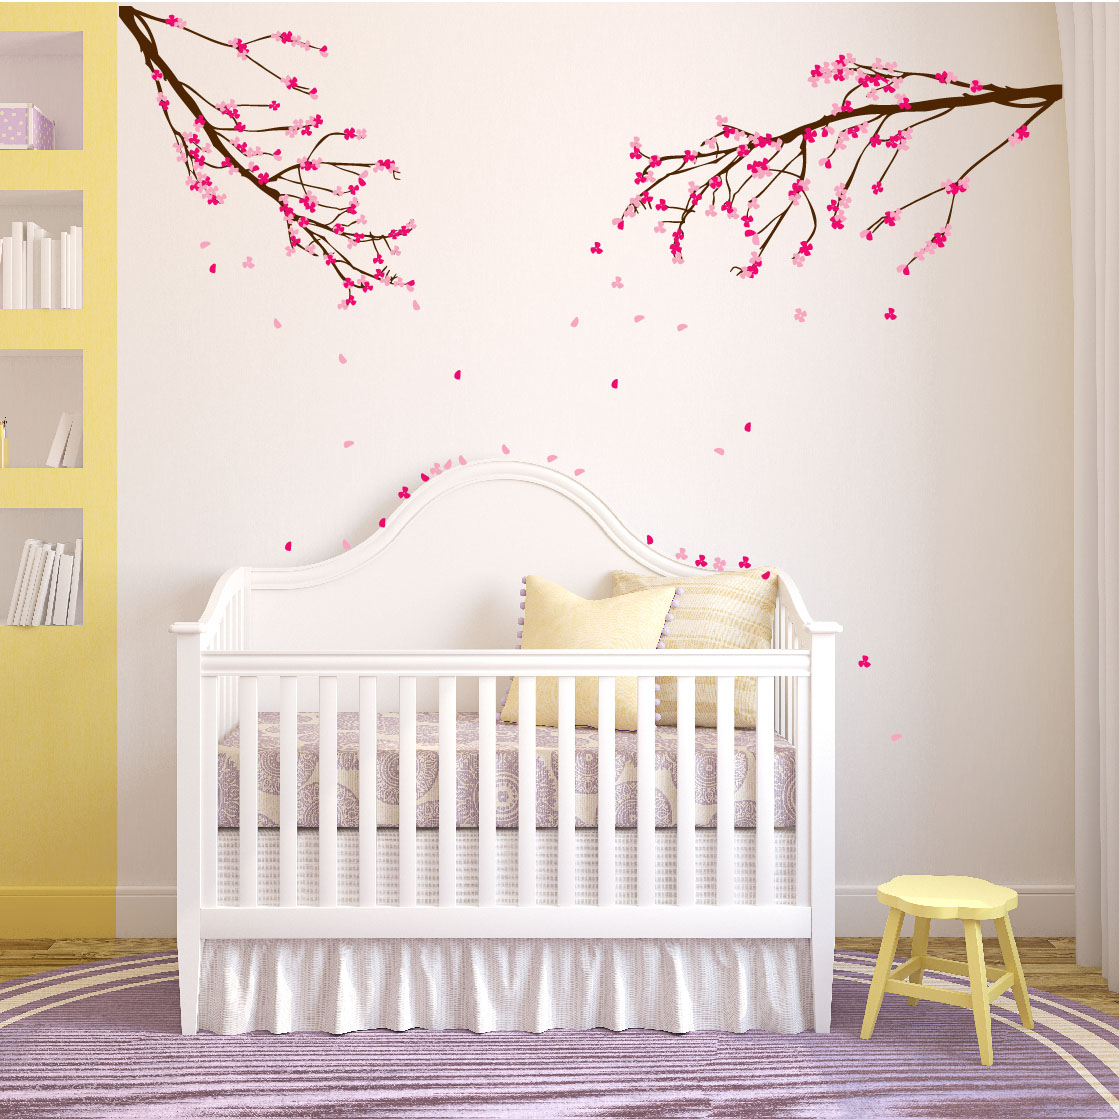 cherry-blossom-branch-nursery-wall-decals.jpg